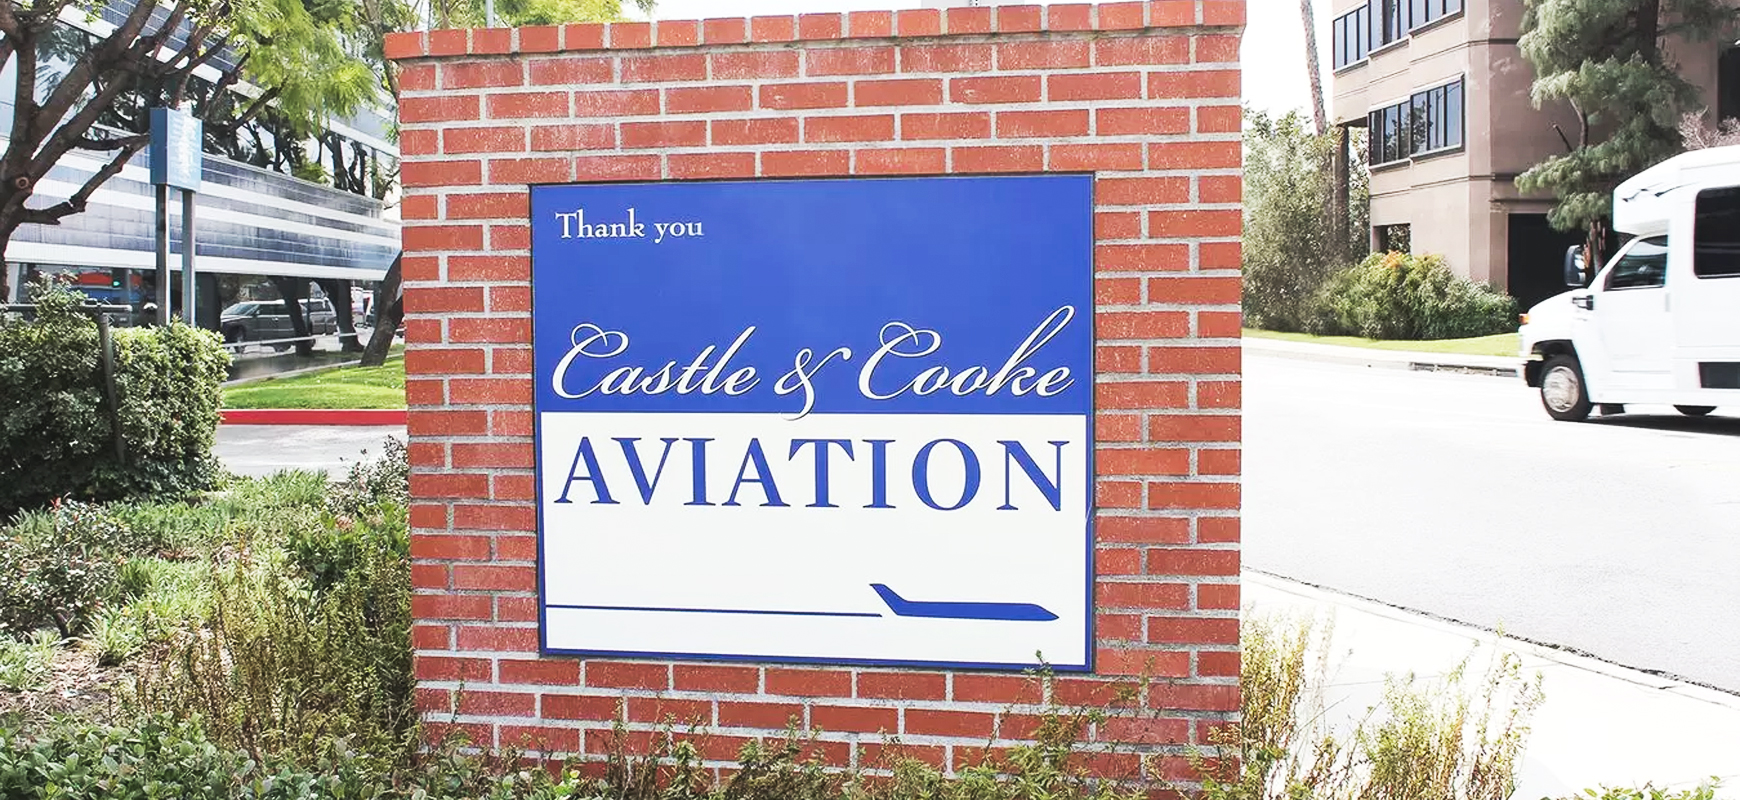 Castle & Cooke Aviation pylon sign design in blue and white colors made of PVC